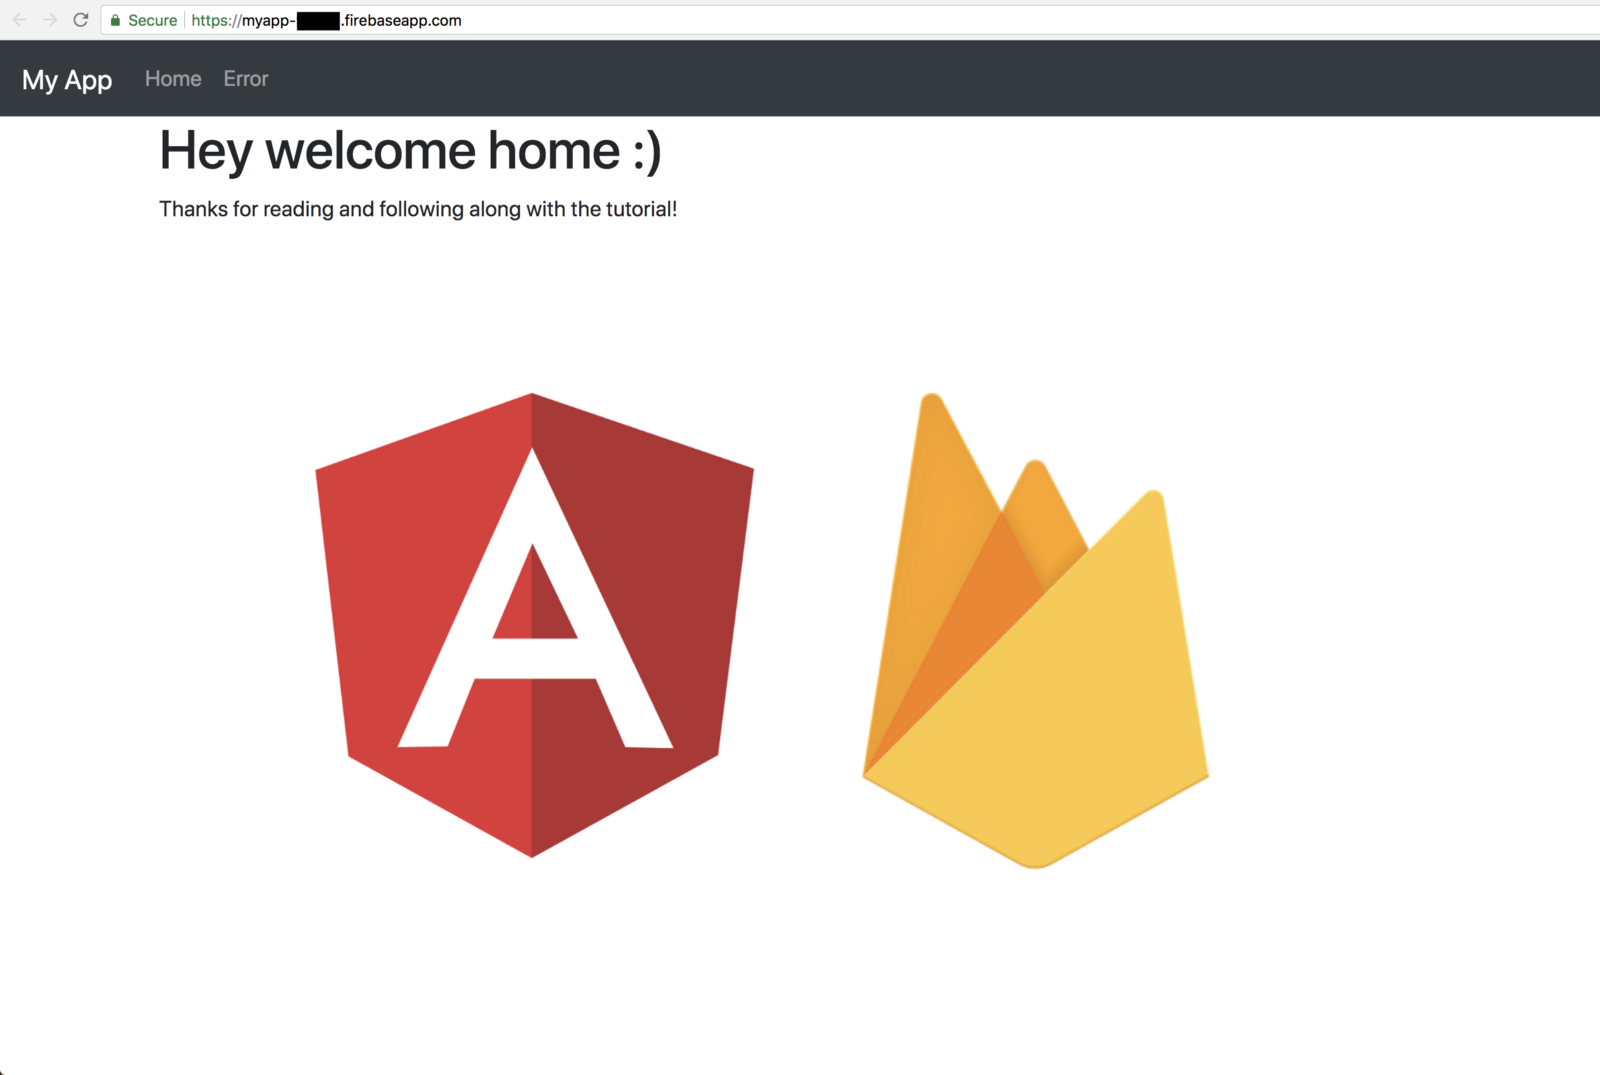 Firebase project welcome screen